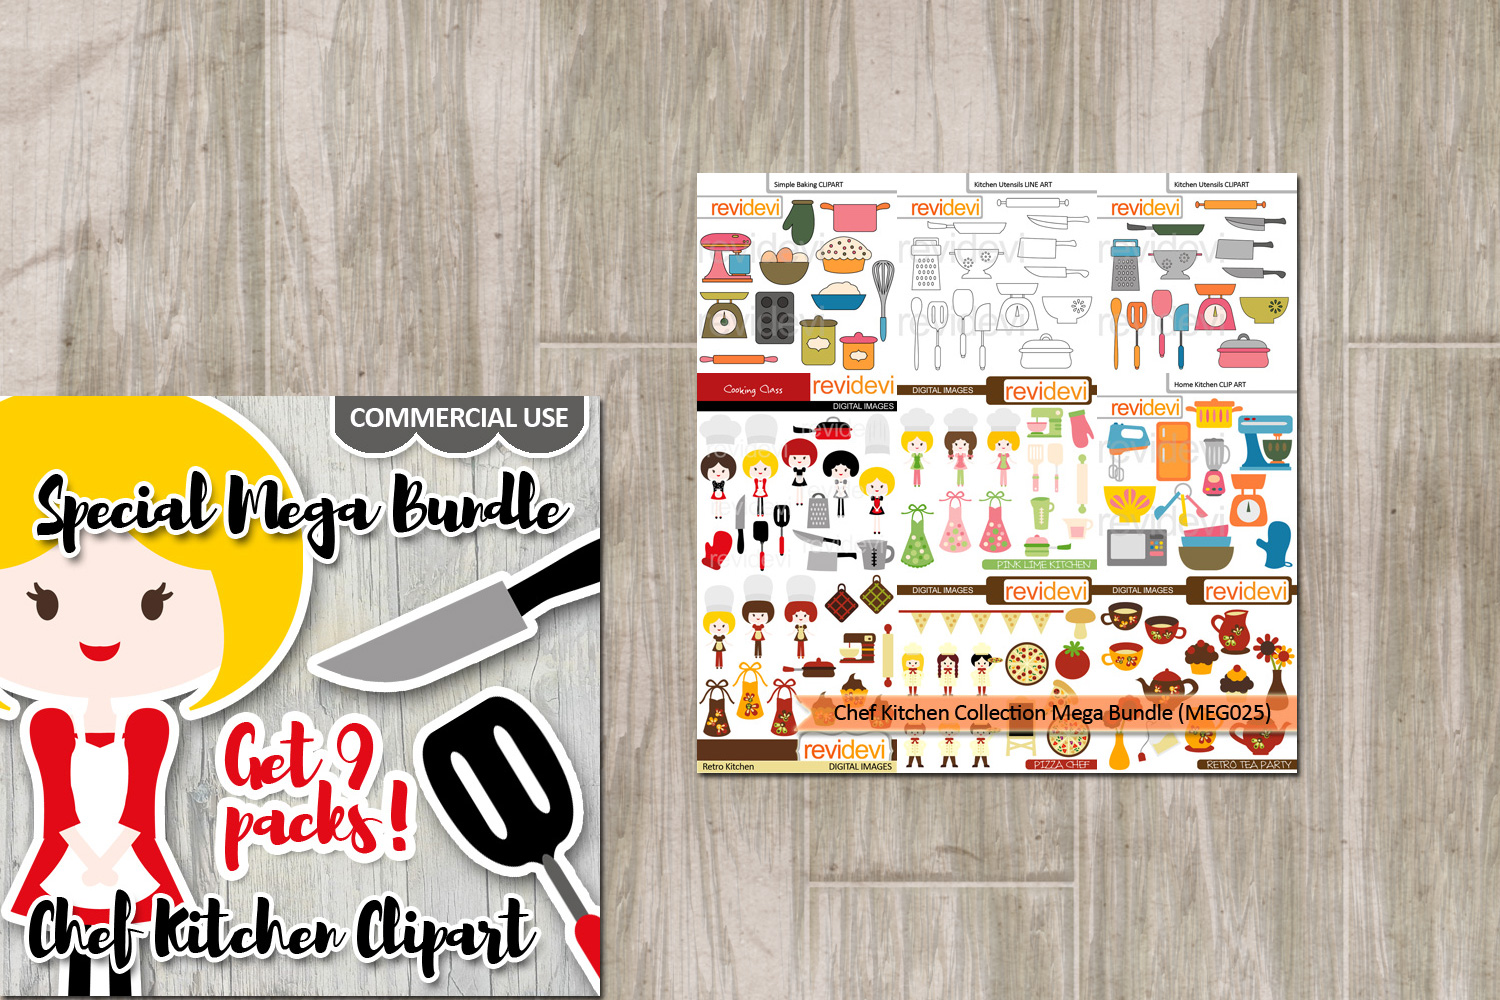 Chef kitchen clipart jpg freeuse Chef Kitchen Utensils Clip art graphics Big Bundle jpg freeuse